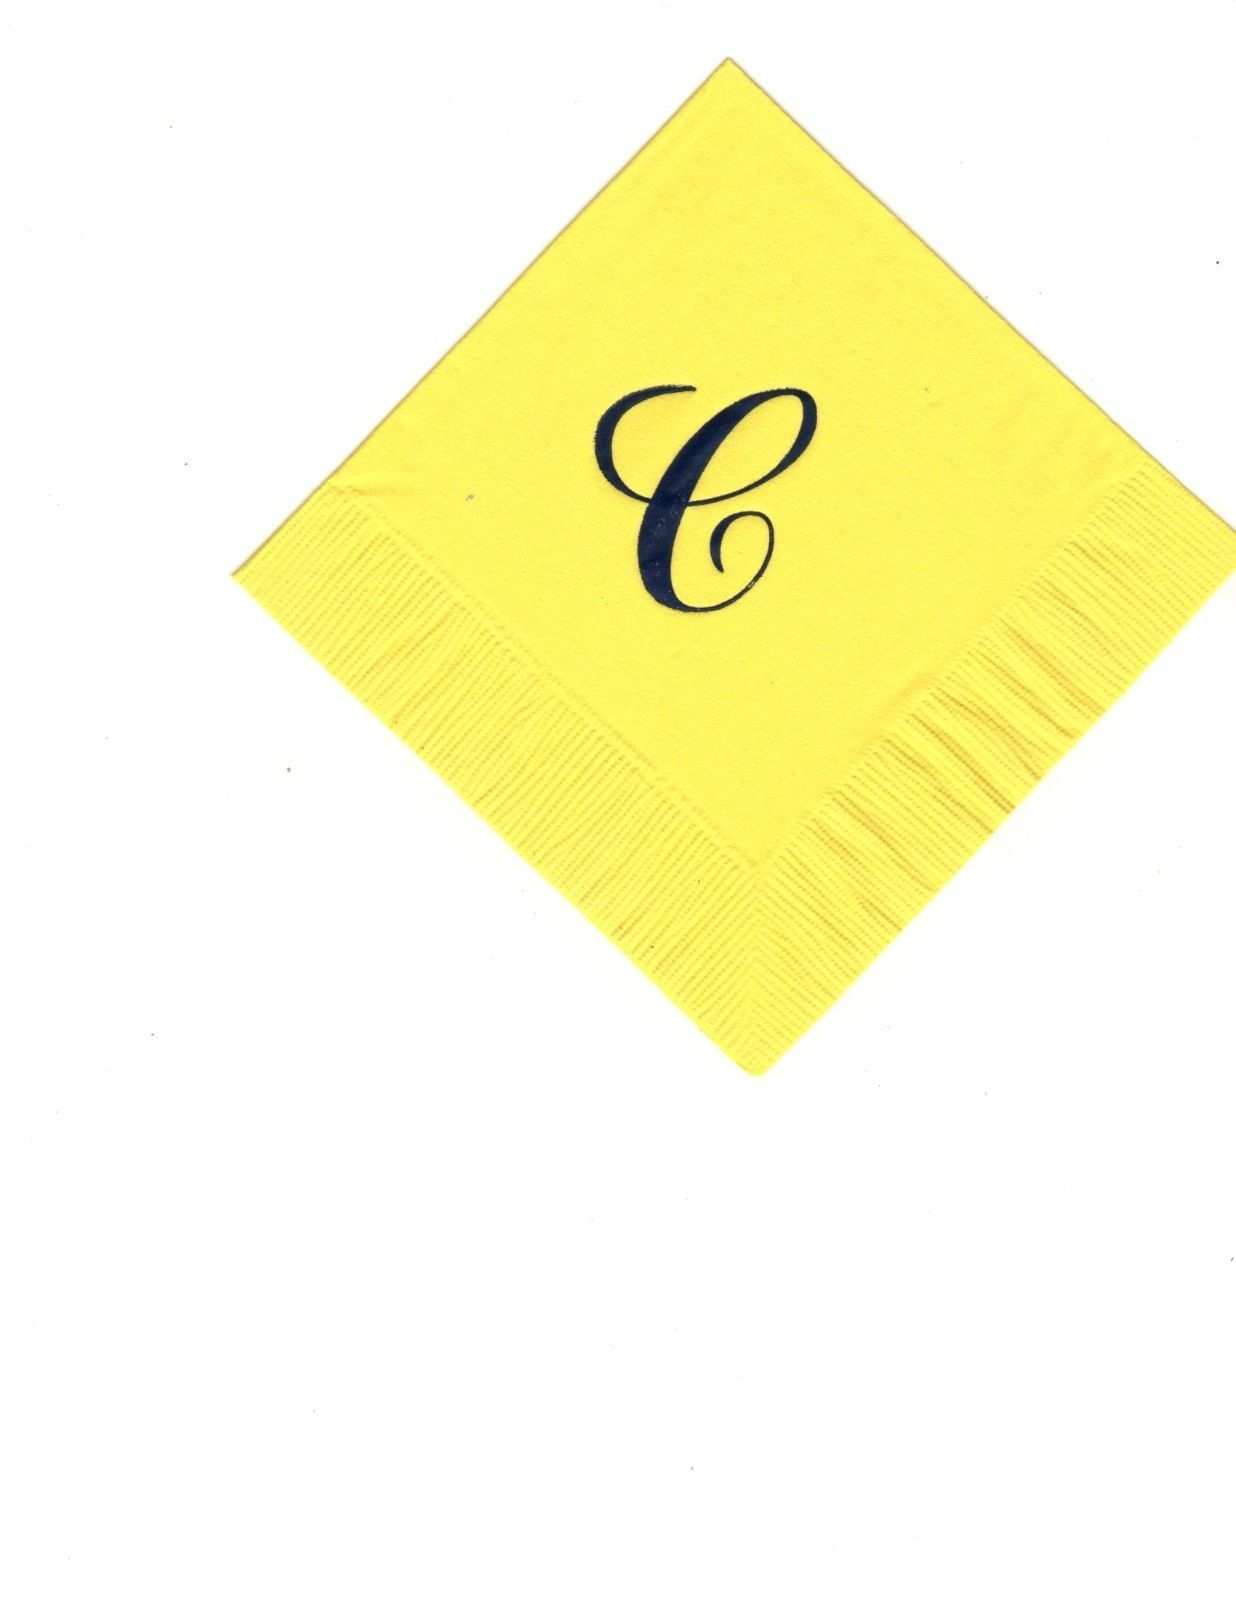 250 large Sheldon Monogram printed napkins your choice of letter and colors image 2